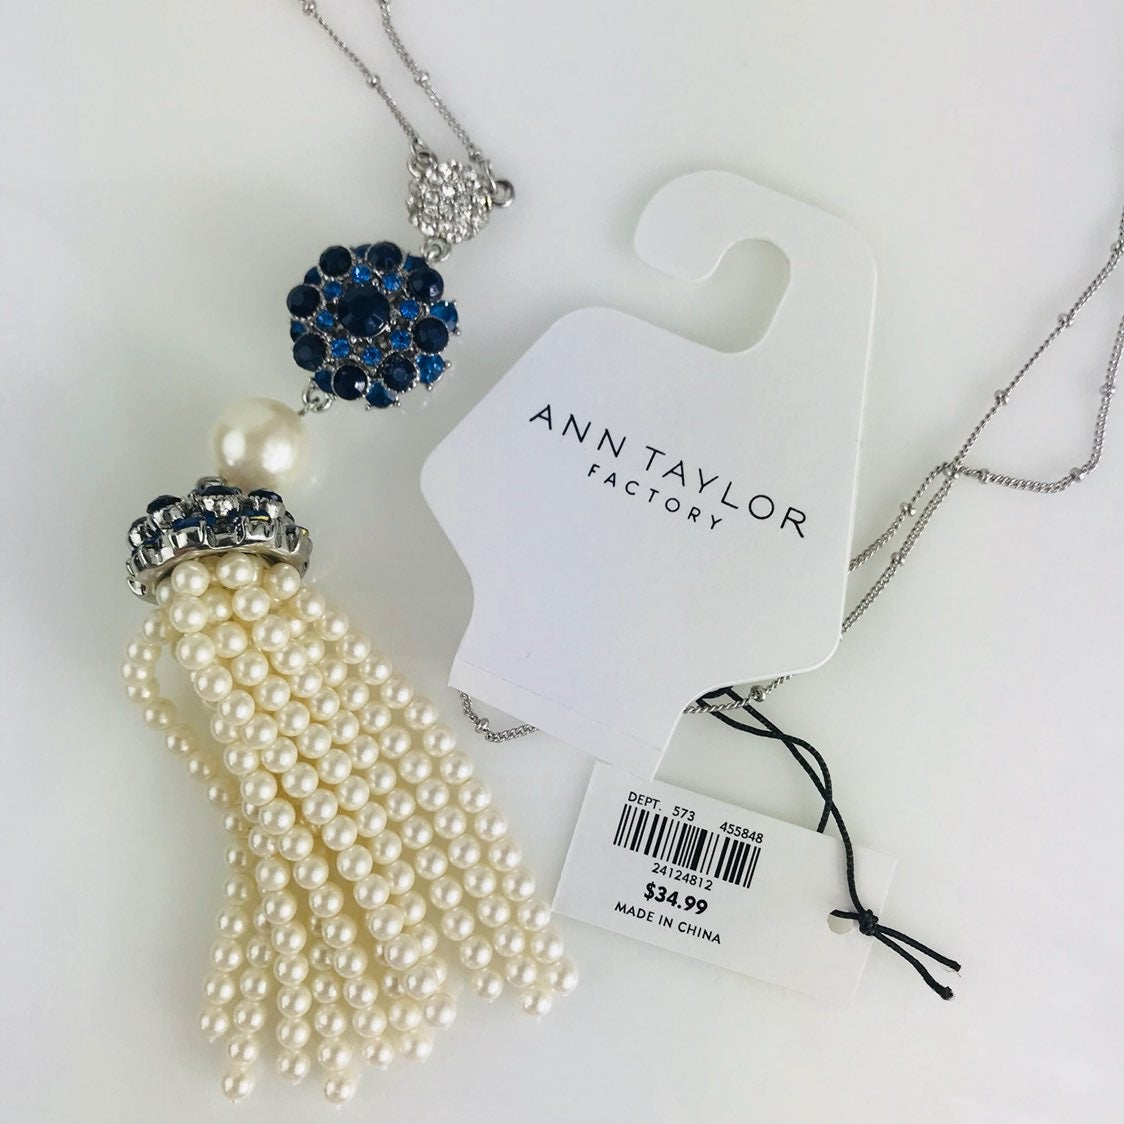 Ann Taylor White Bead Tassel Necklace